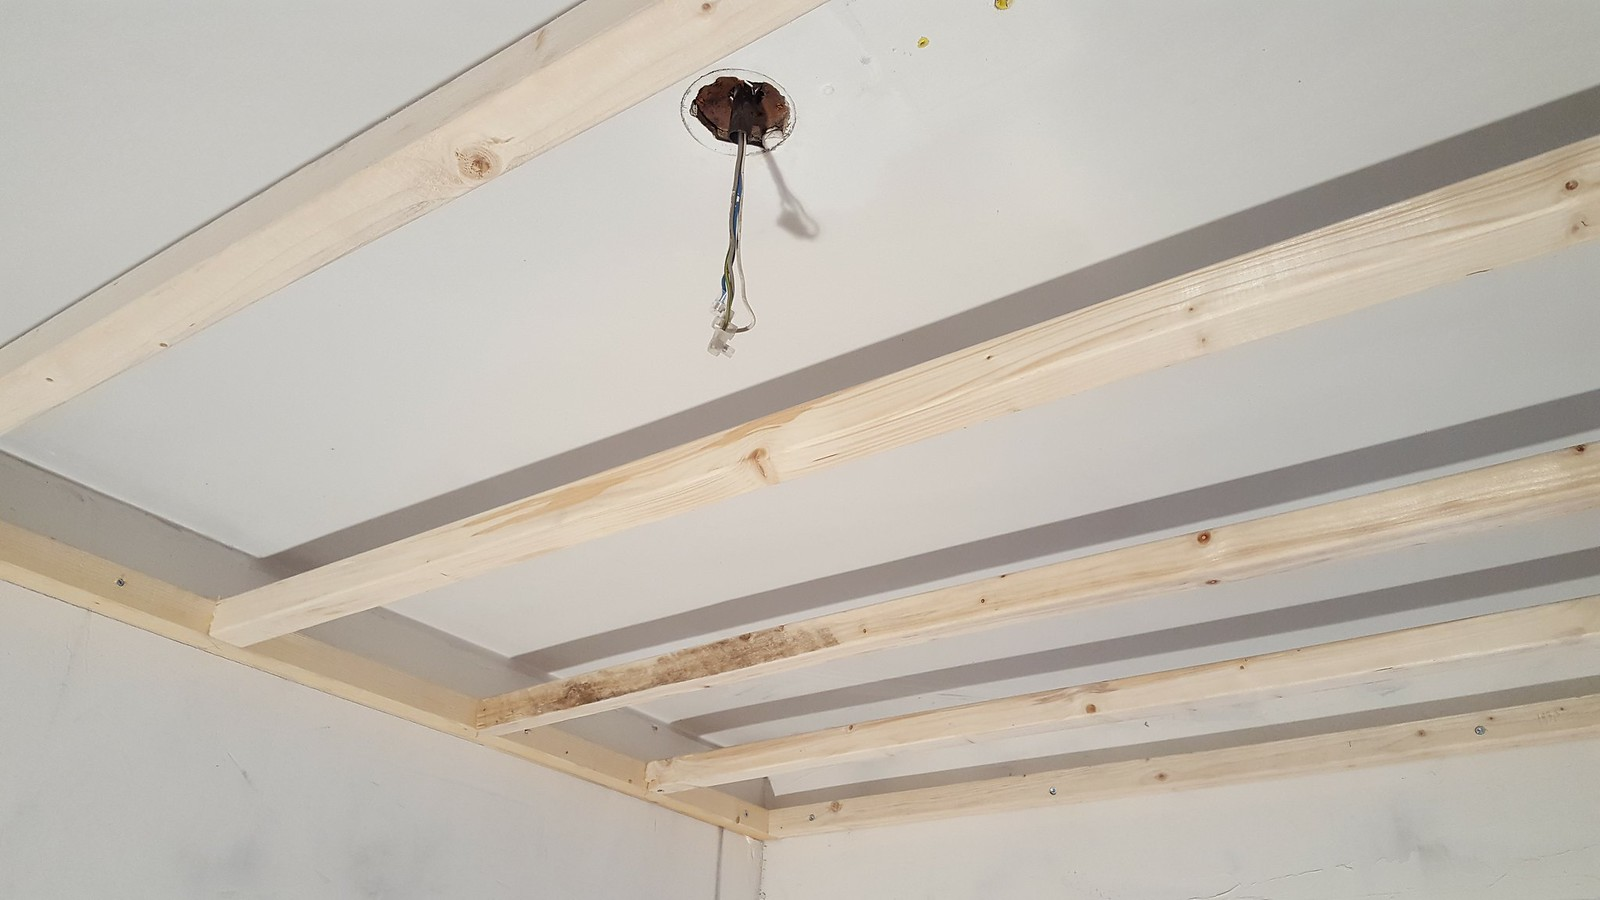 Guide Lower Ceiling And Install Led Downlights